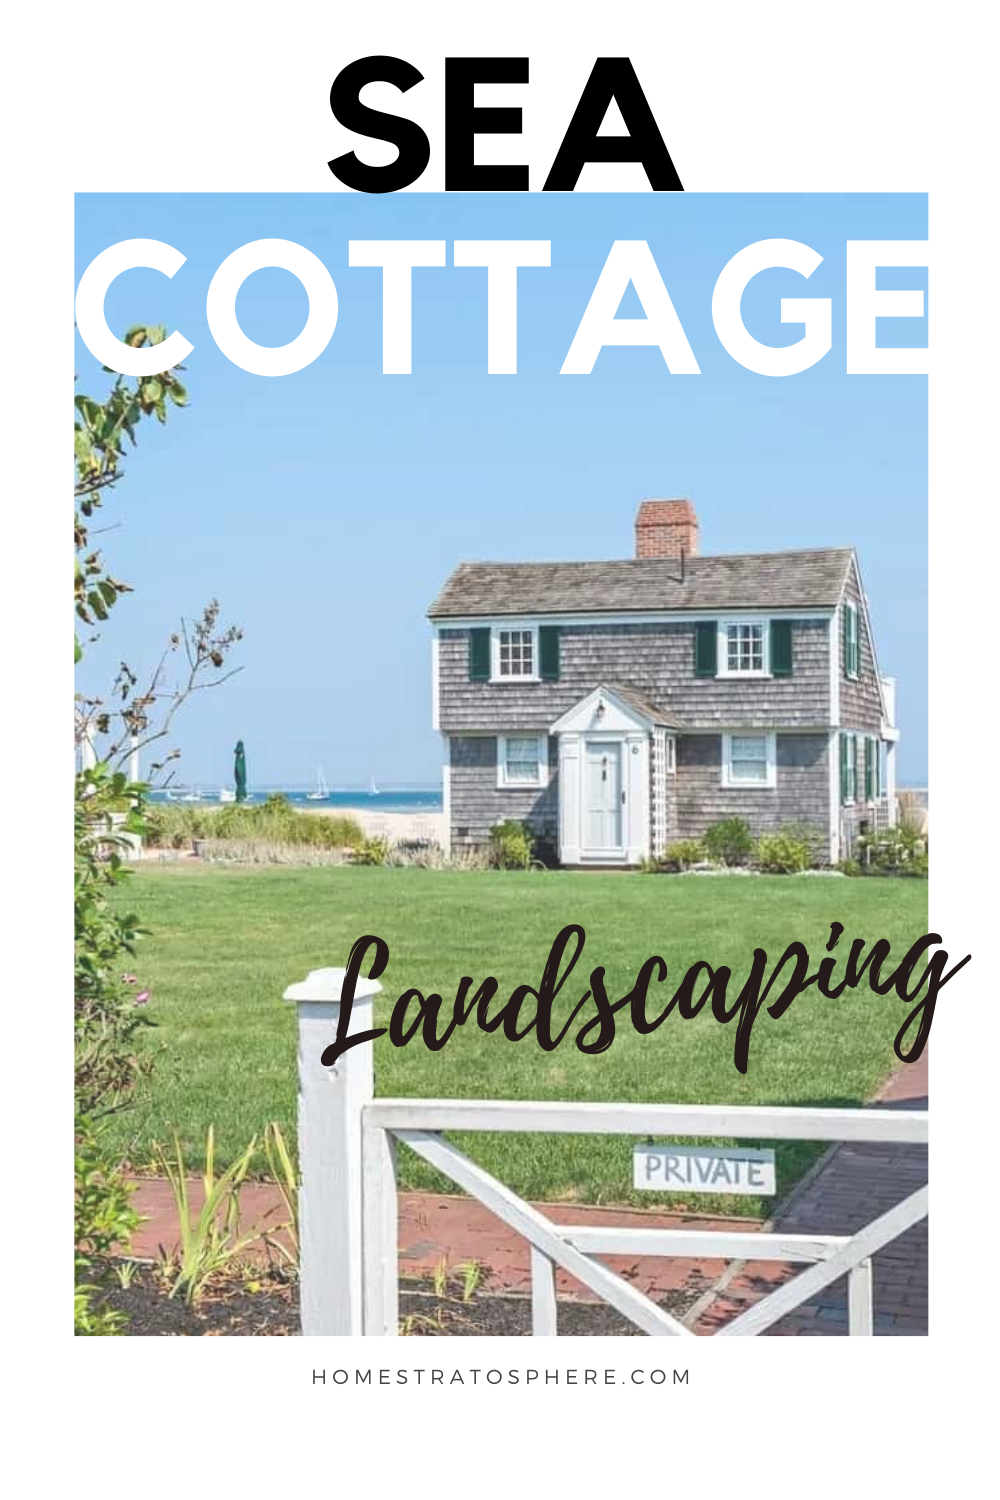 35 Cottage Style House Landscaping Ideas (Photos